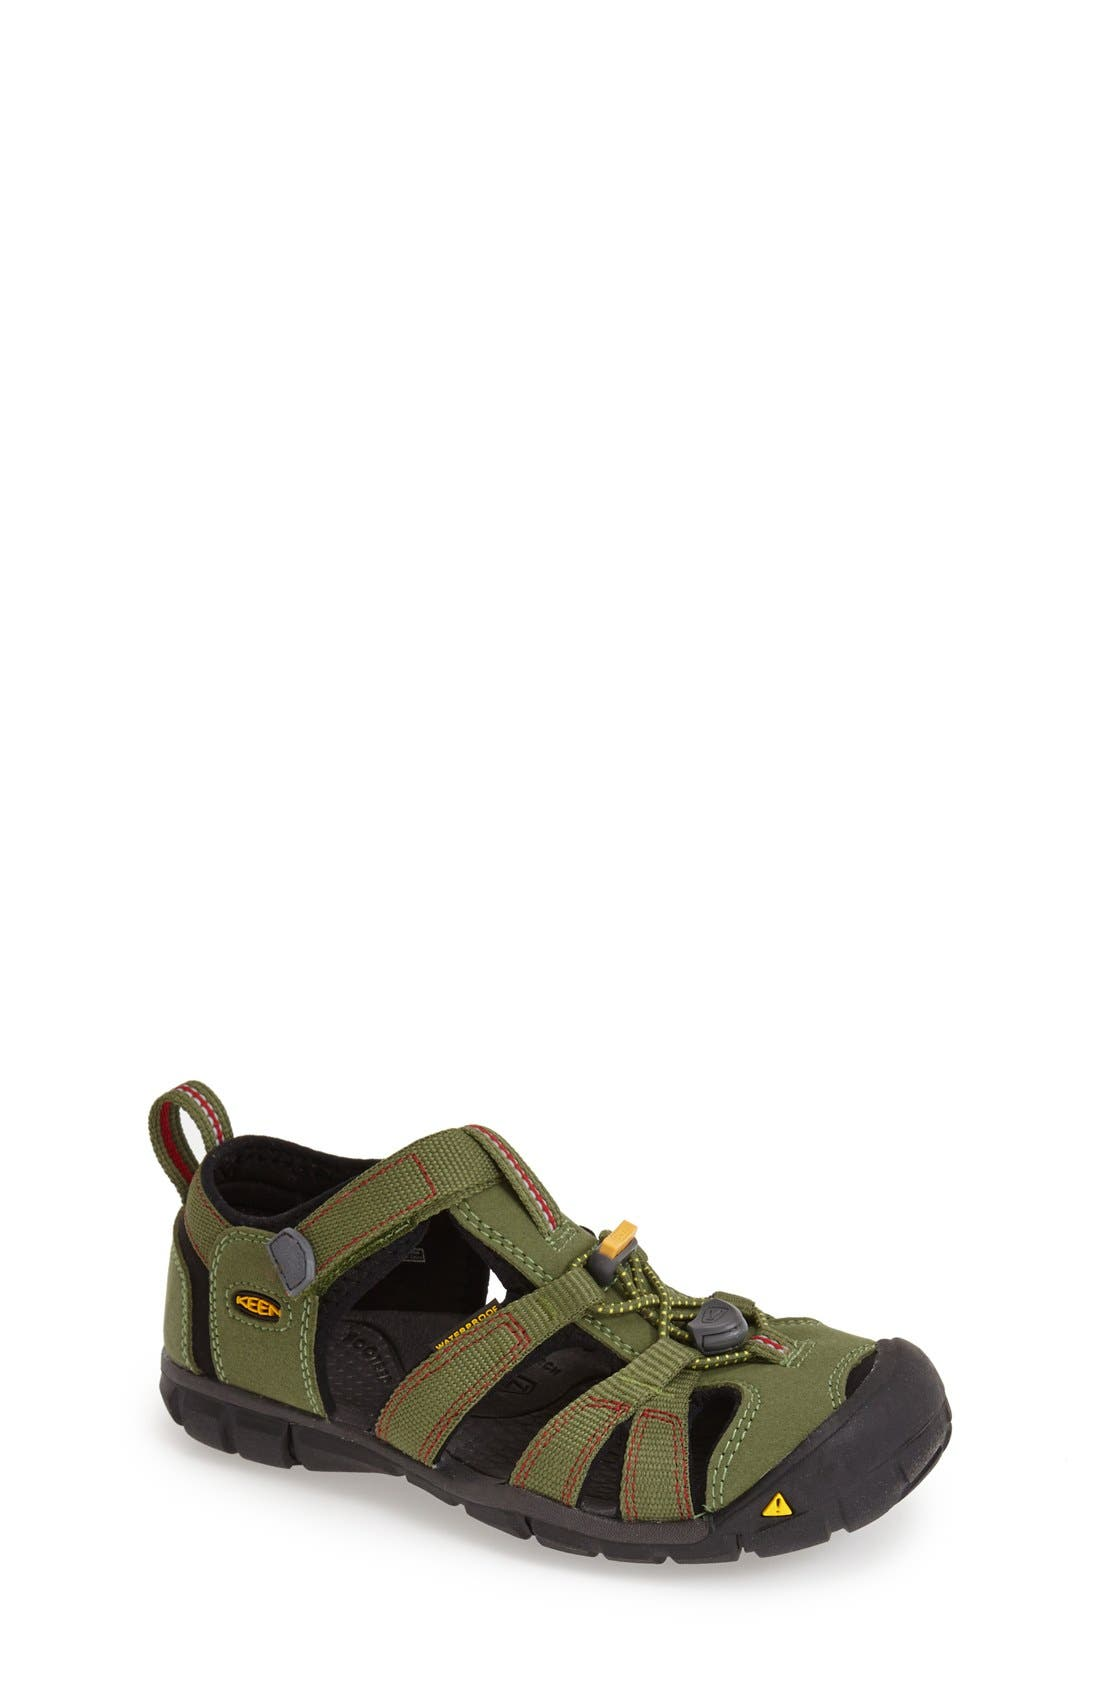 Alternate Image 1 Selected - Keen 'Seacamp II' Waterproof Sandal (Baby, Walker, Toddler, Little Kid & Big Kid)